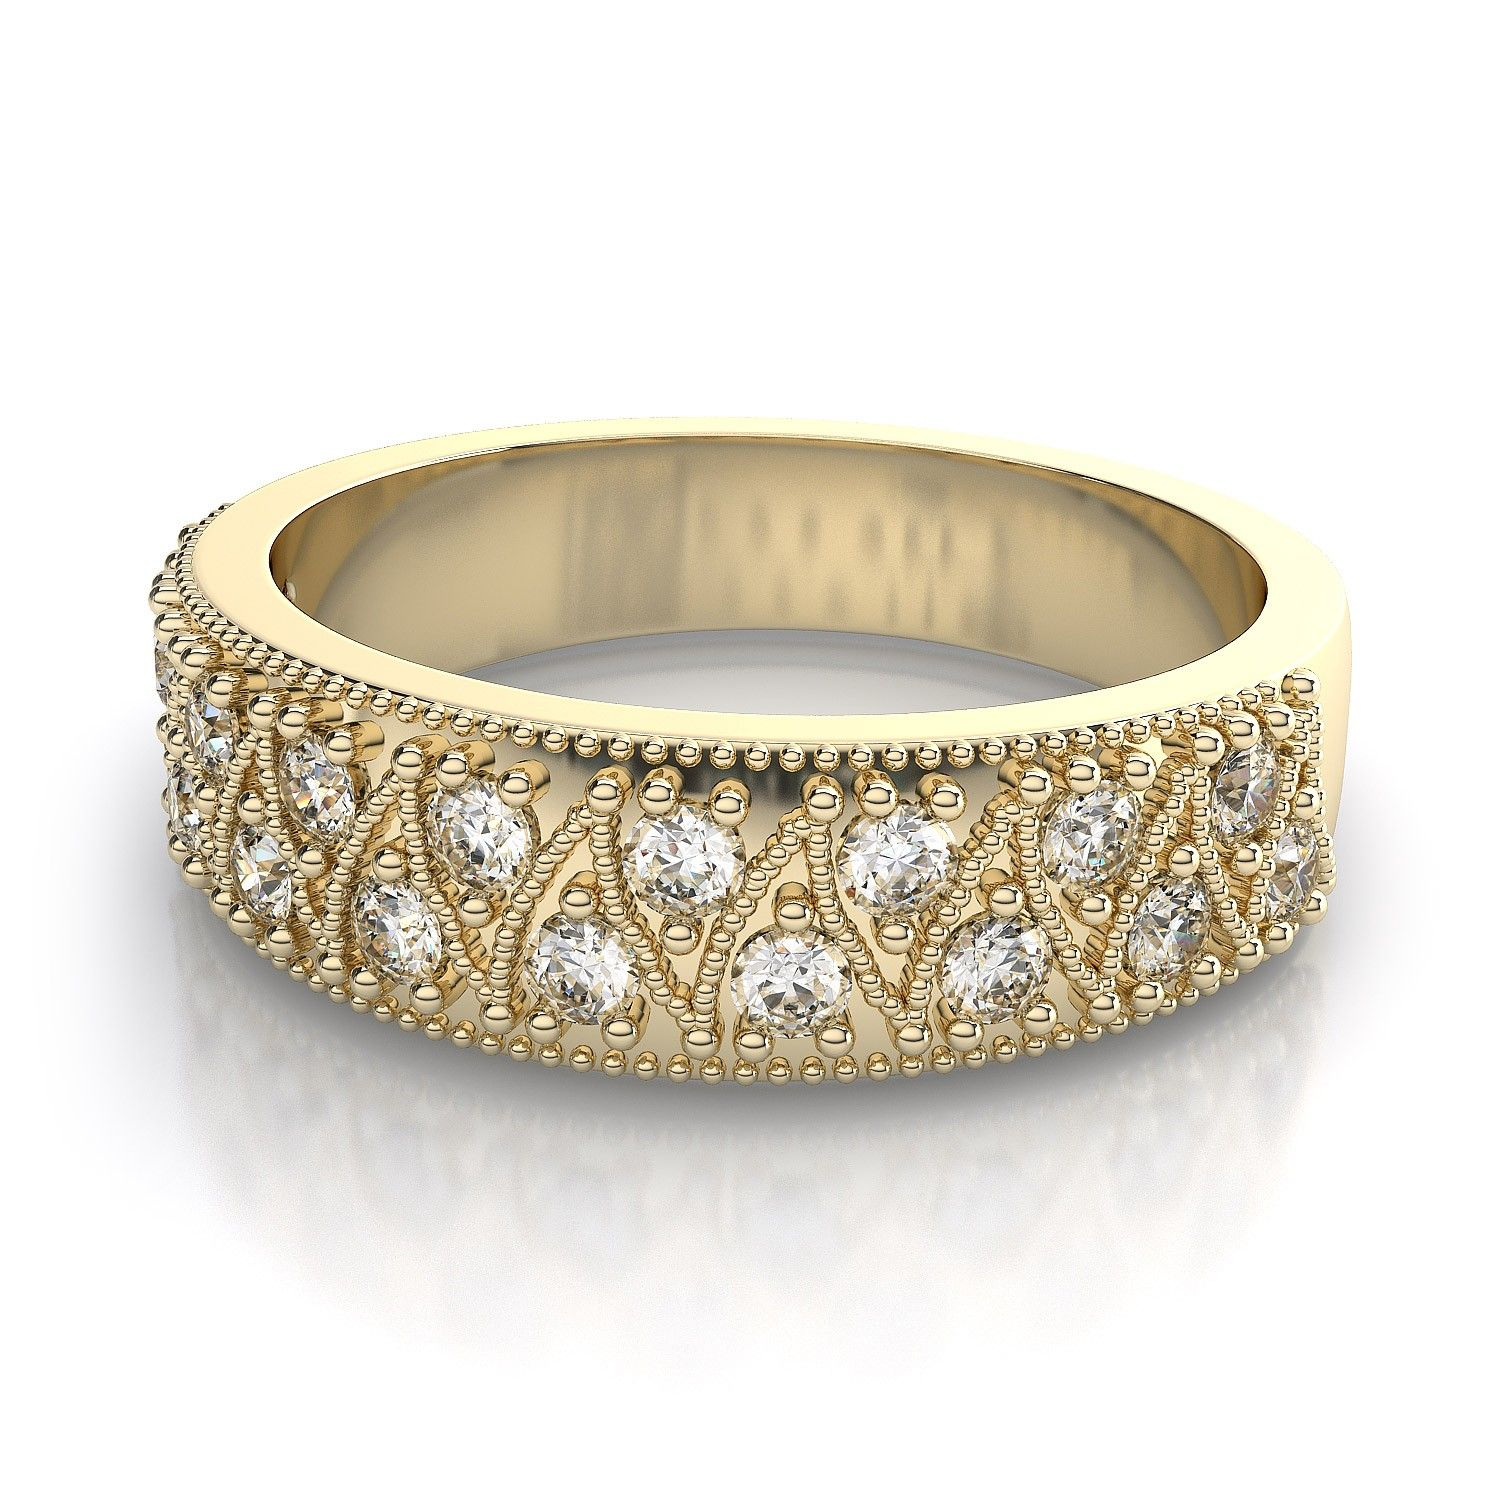 gold and diamond wedding rings Google Search Rings Pinterest